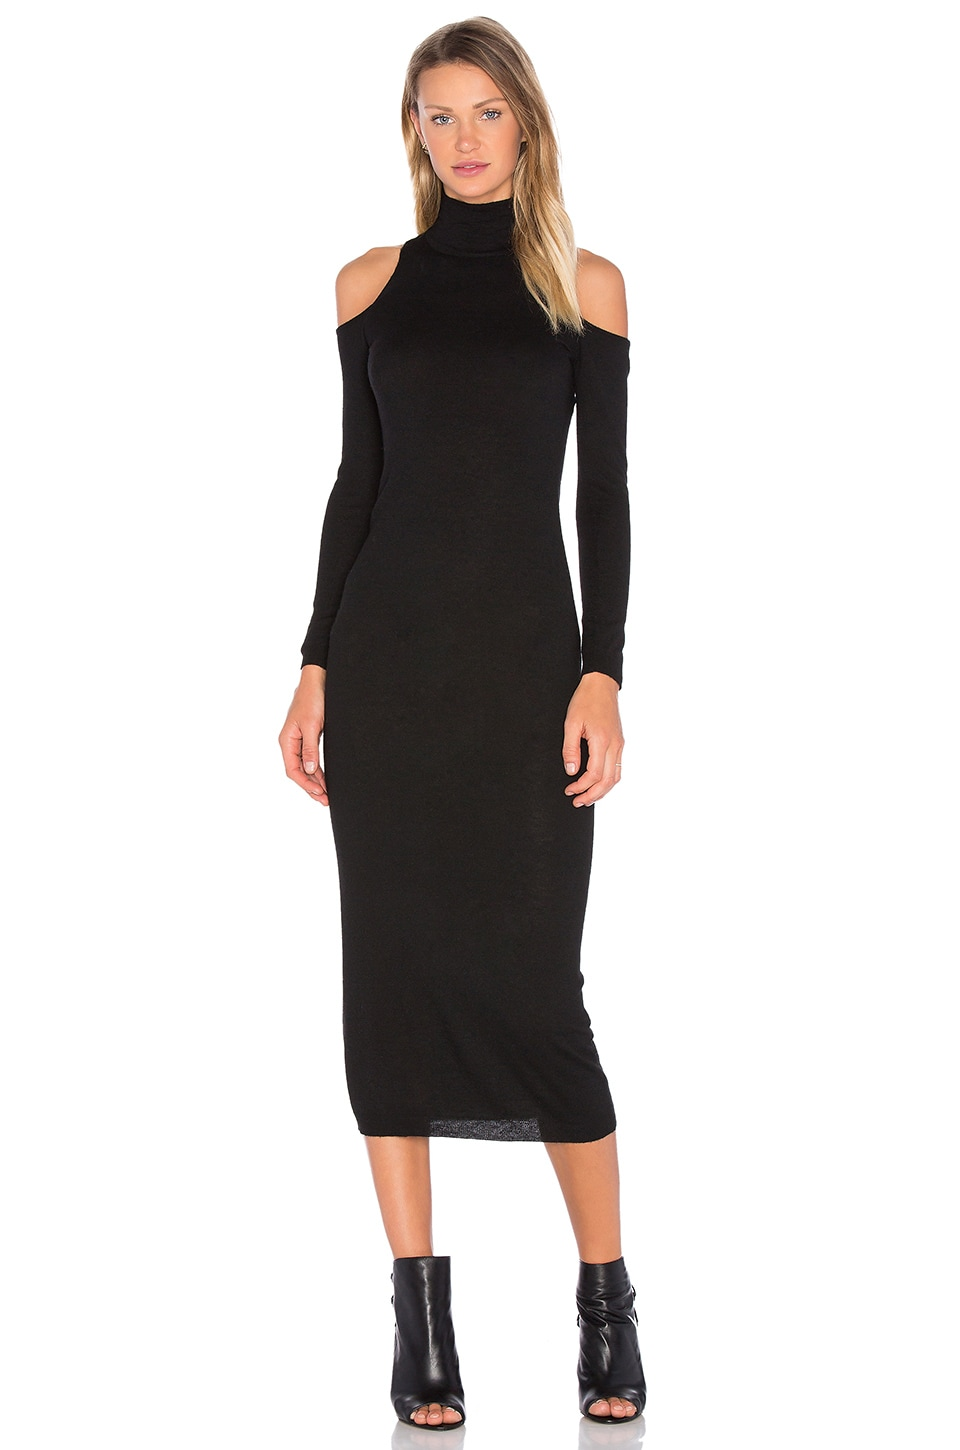 Deby Debo Lindsay Sweater Midi Dress in Black